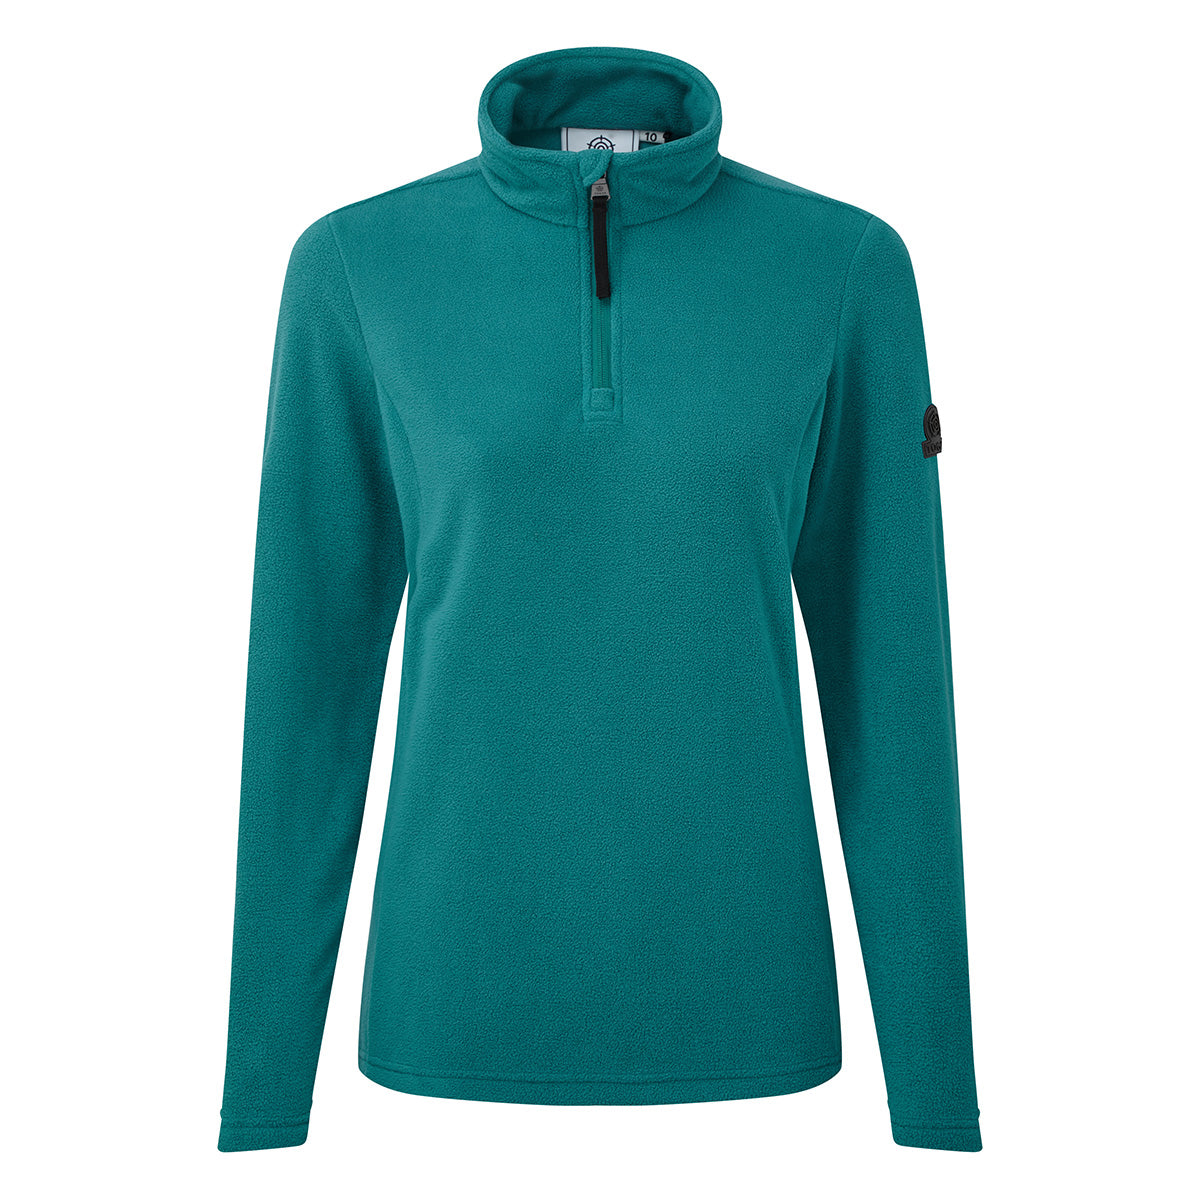 Shire Womens Fleece Zipneck - Topaz image 4